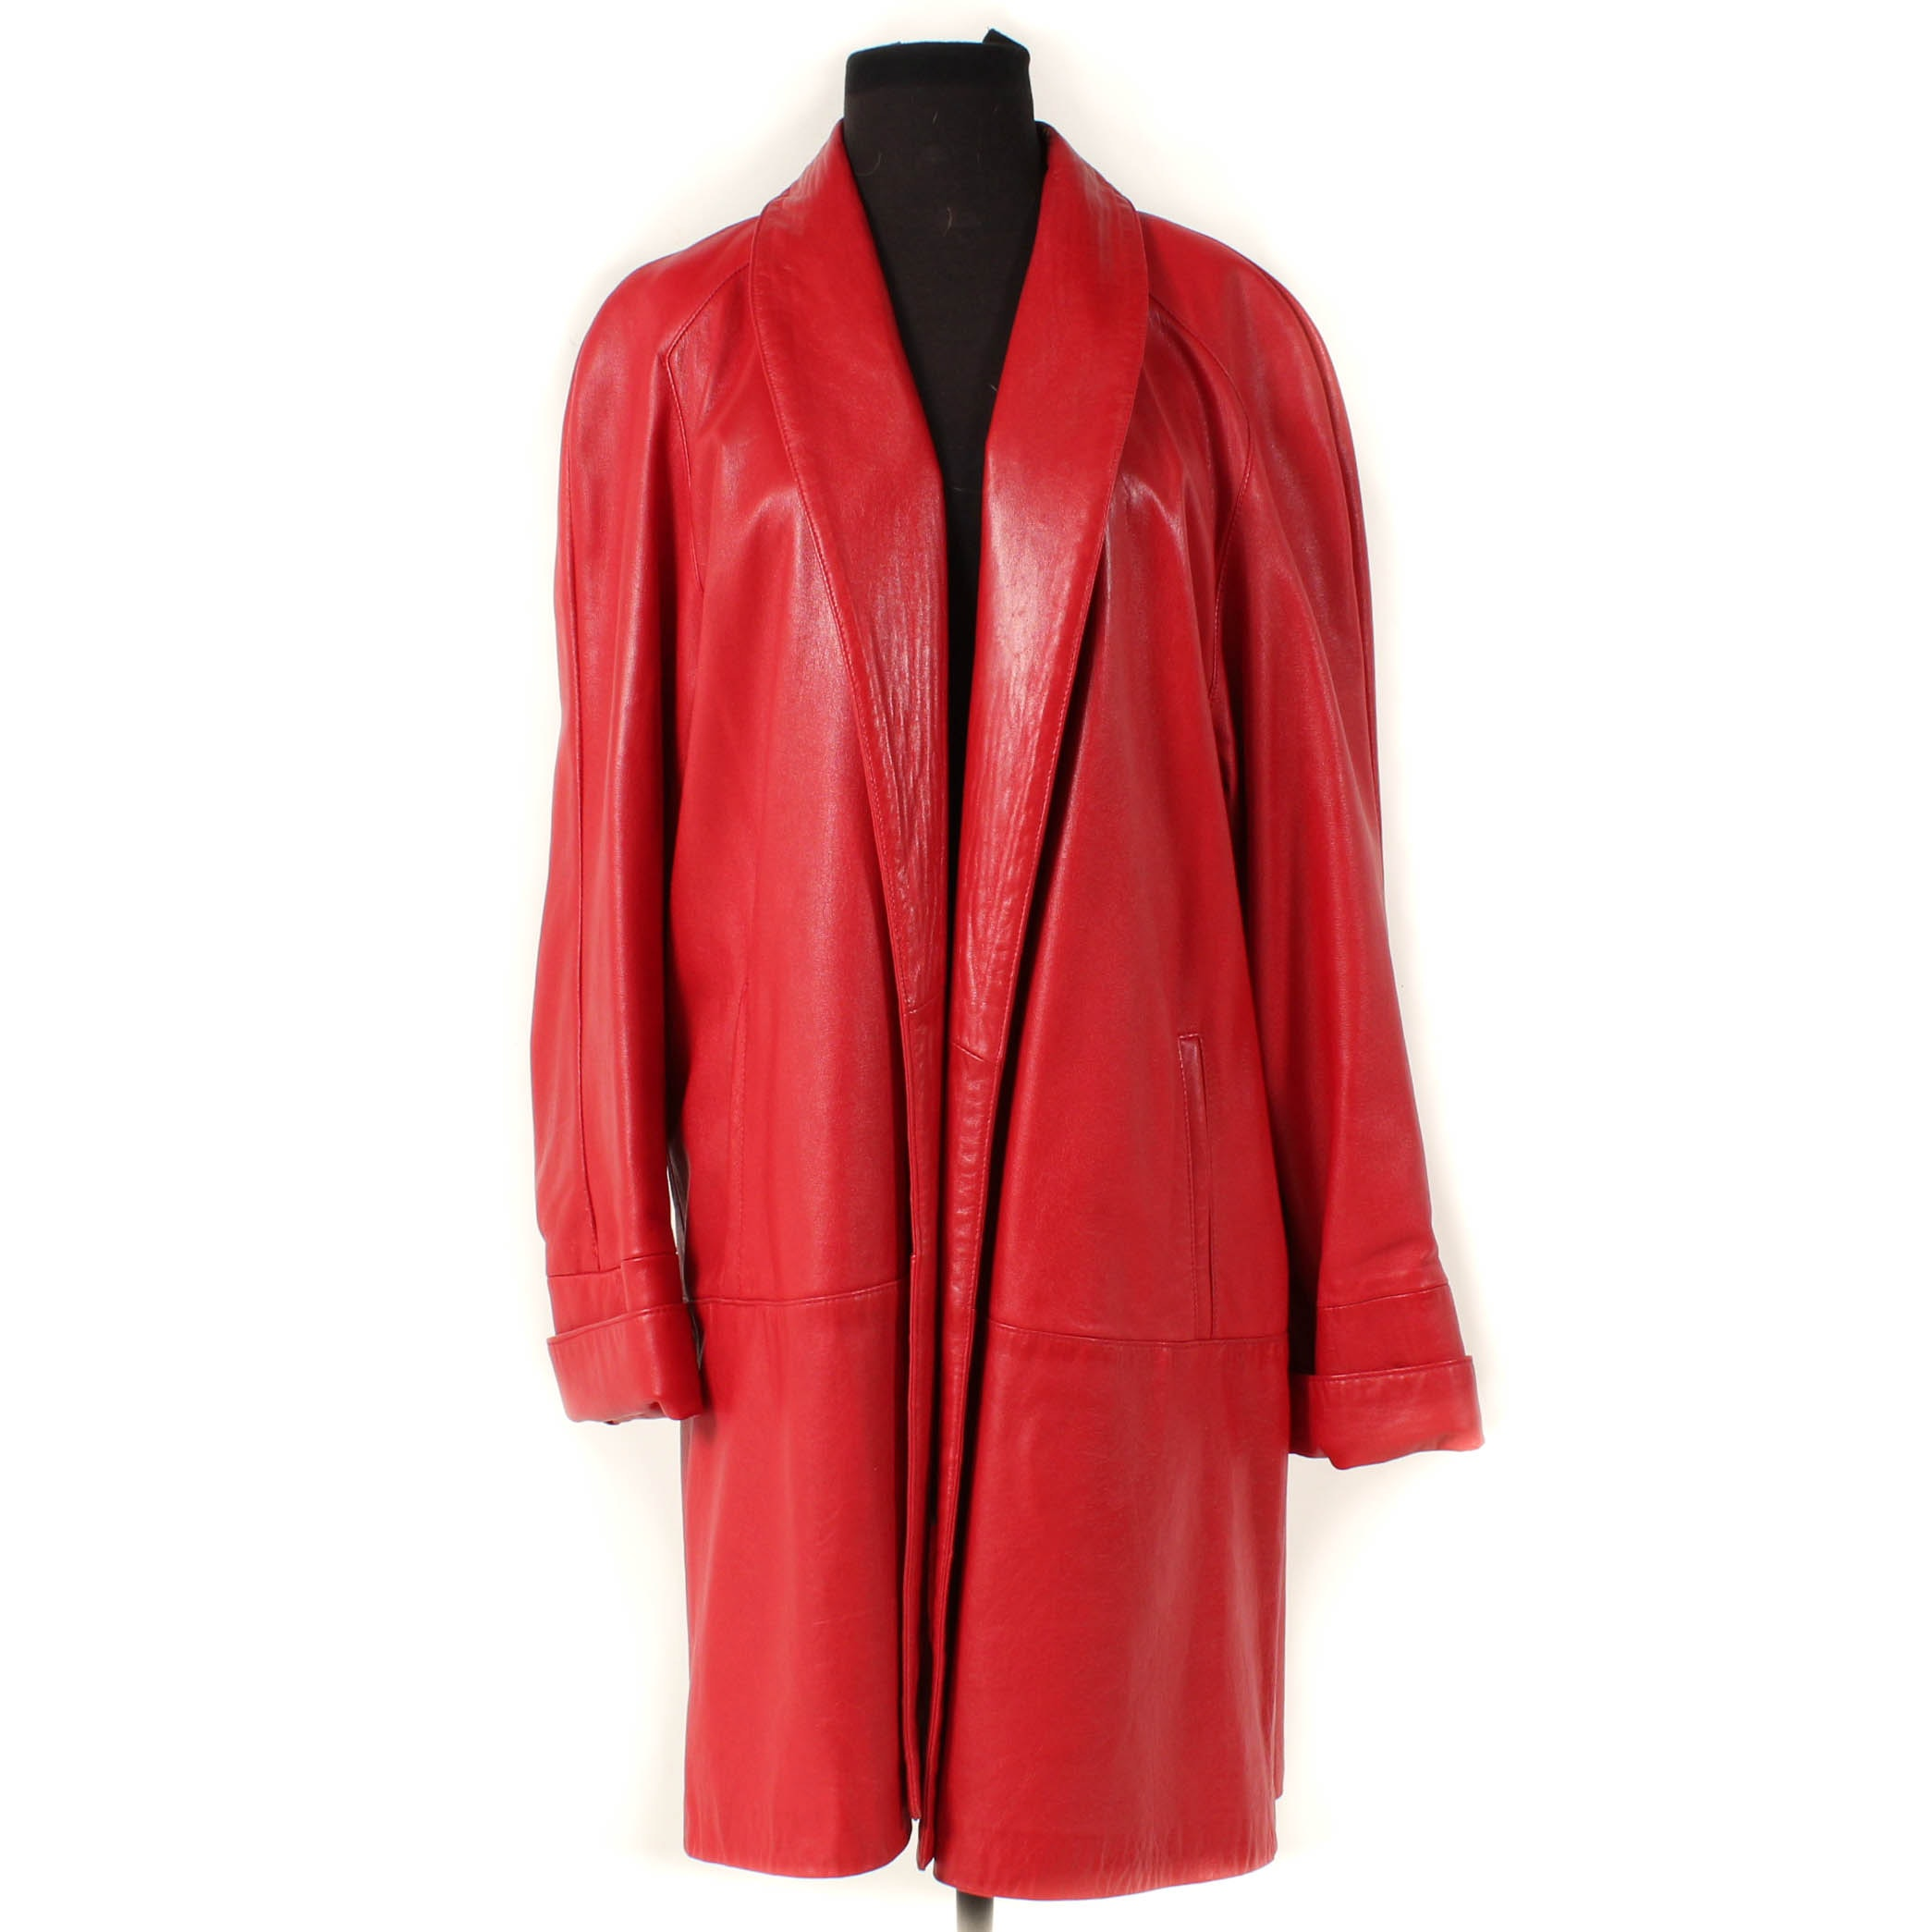 Maxima for Saks Fifth Avenue Red Leather Jacket